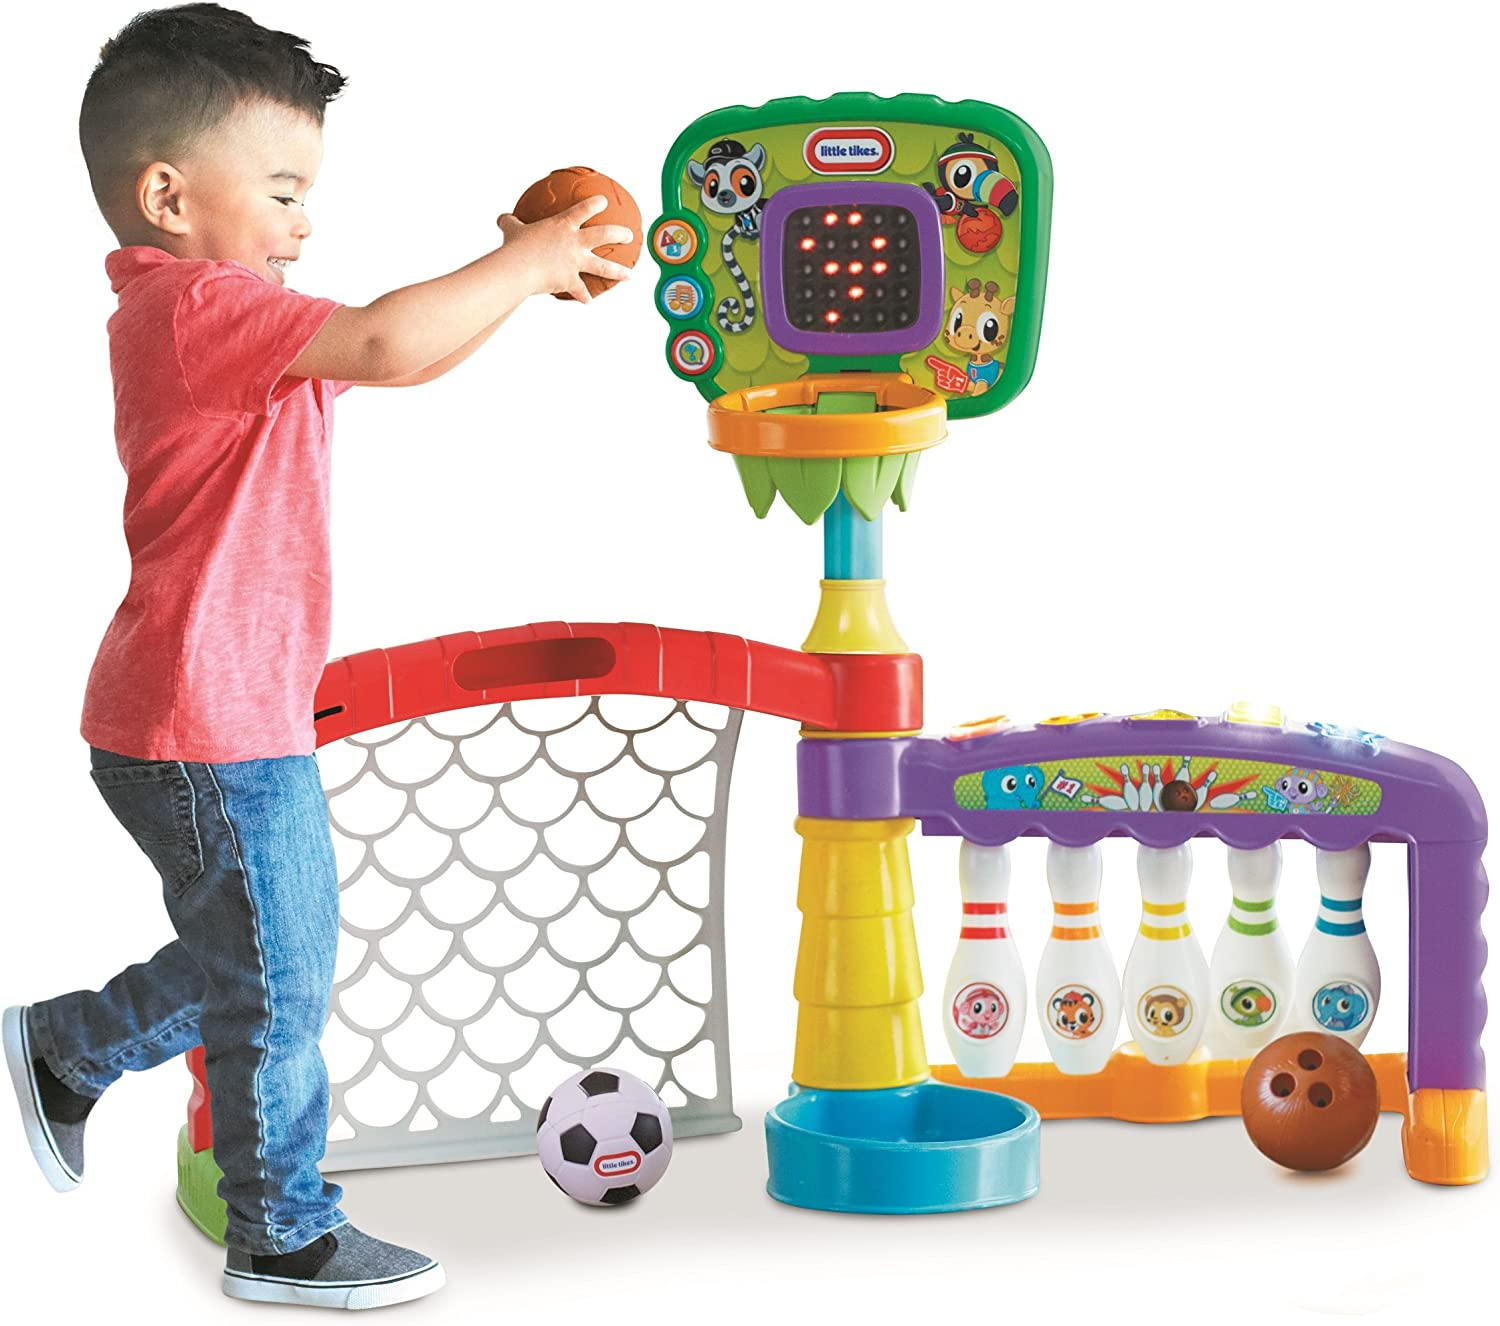 Top 15 Best Basketball Hoop For Kids (2020 Reviews & Buying Guide) 11